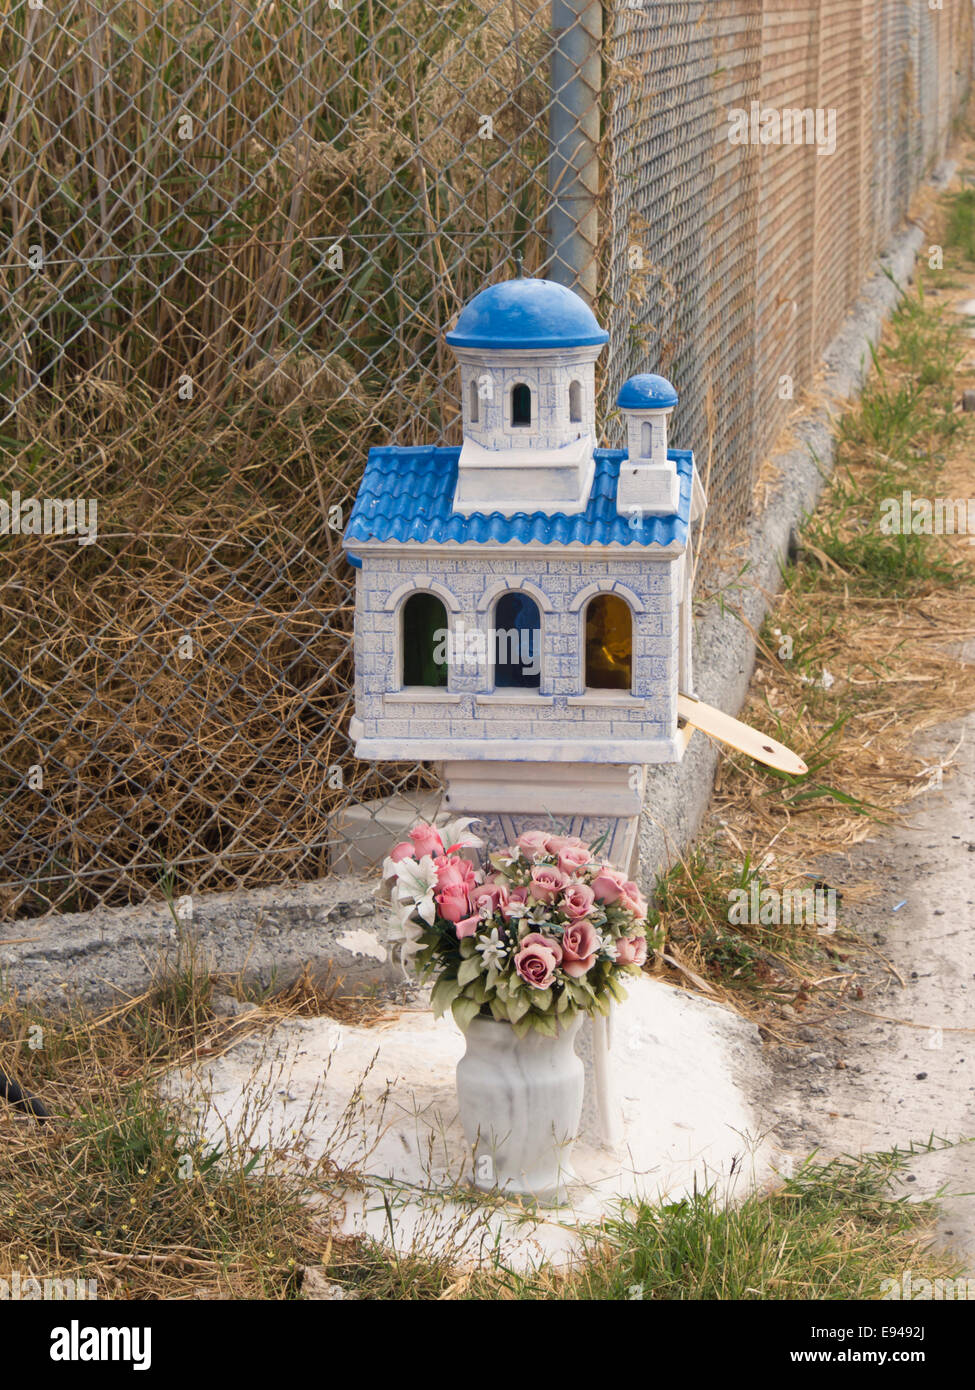 Greek orthodox roadside memorial miniature chapel, put up where an accident has occurred, Samos Greece - Stock Image